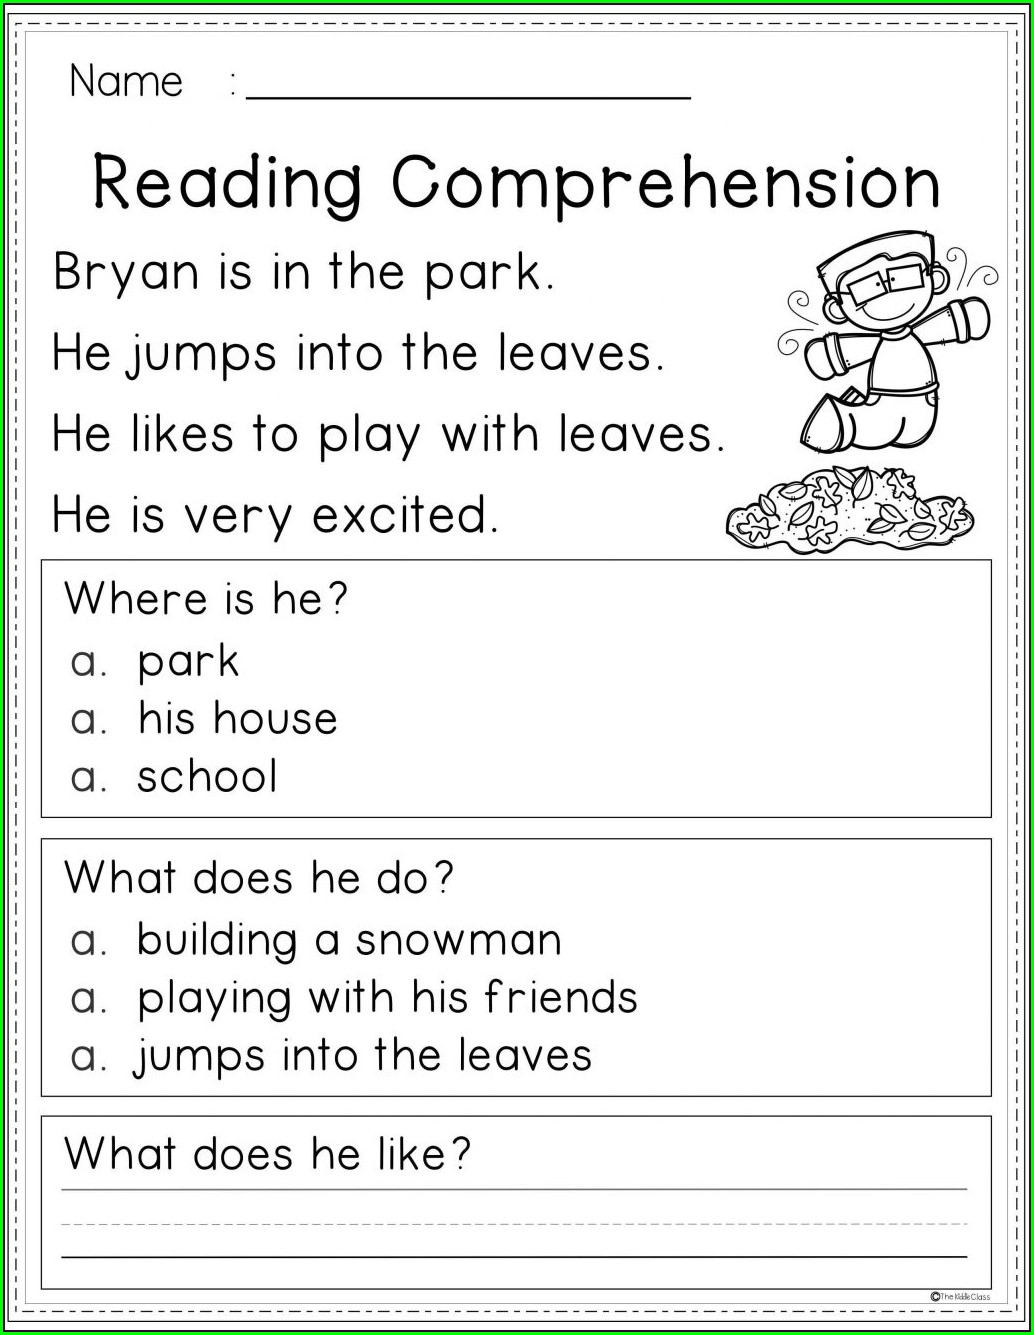 Maths Worksheet Generator Ks1